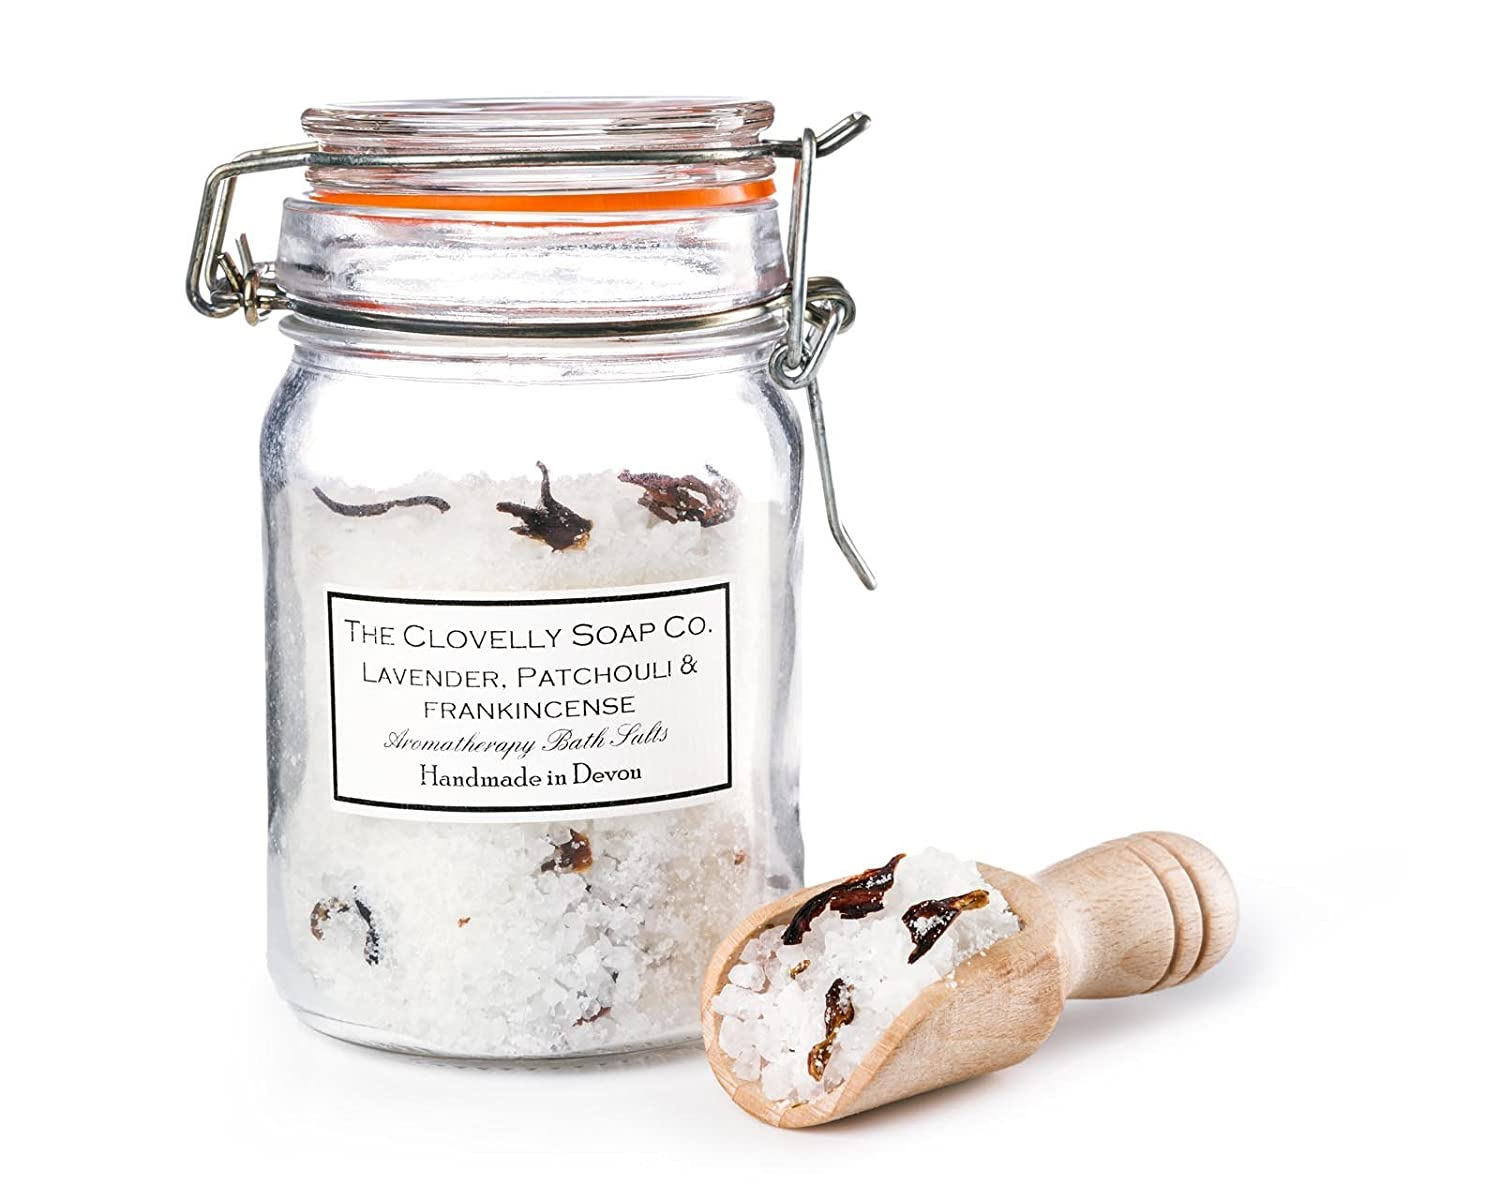 Clovelly Soap Co Natural Scented Lavender Epsom Bath Salts with Wooden Scoop in a Clip Top Jar The Clovelly Soap Co